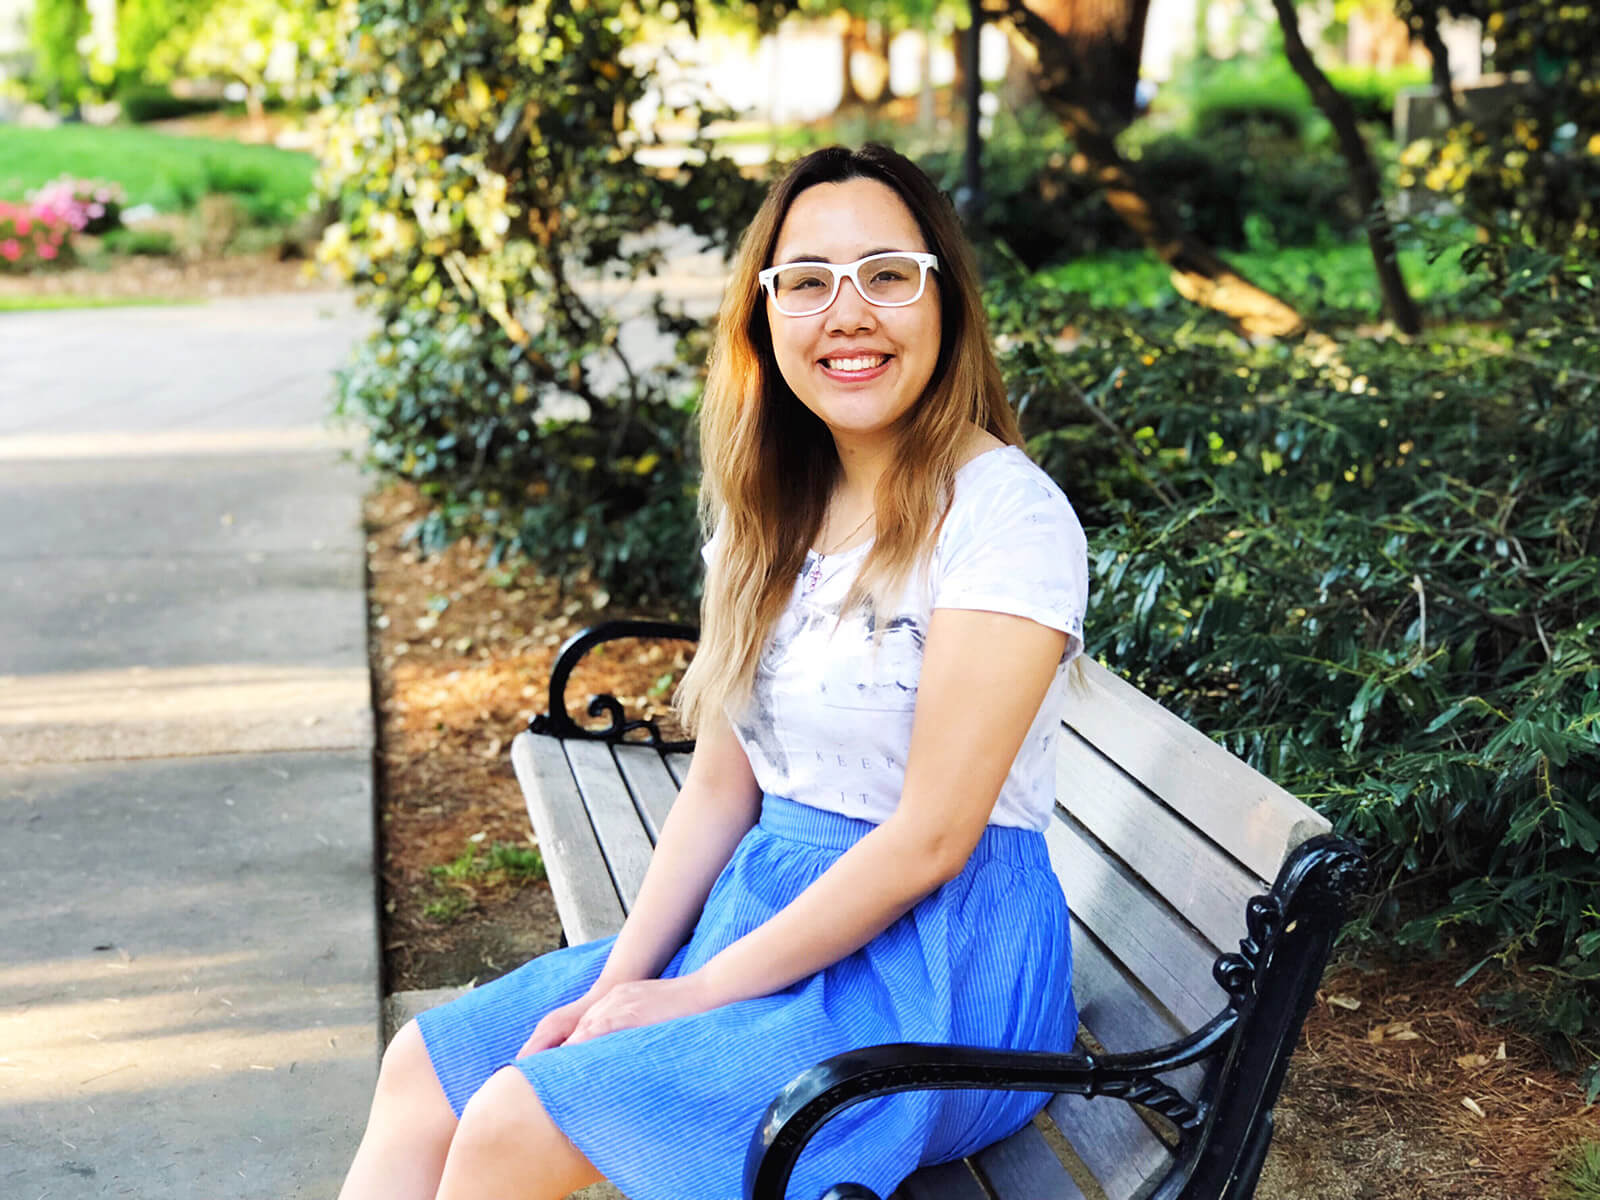 A girl sitting on a park bench, smiling. She has dark hair with blonde highlights, is wearing white glasses, and a light coloured top and a blue skirt.